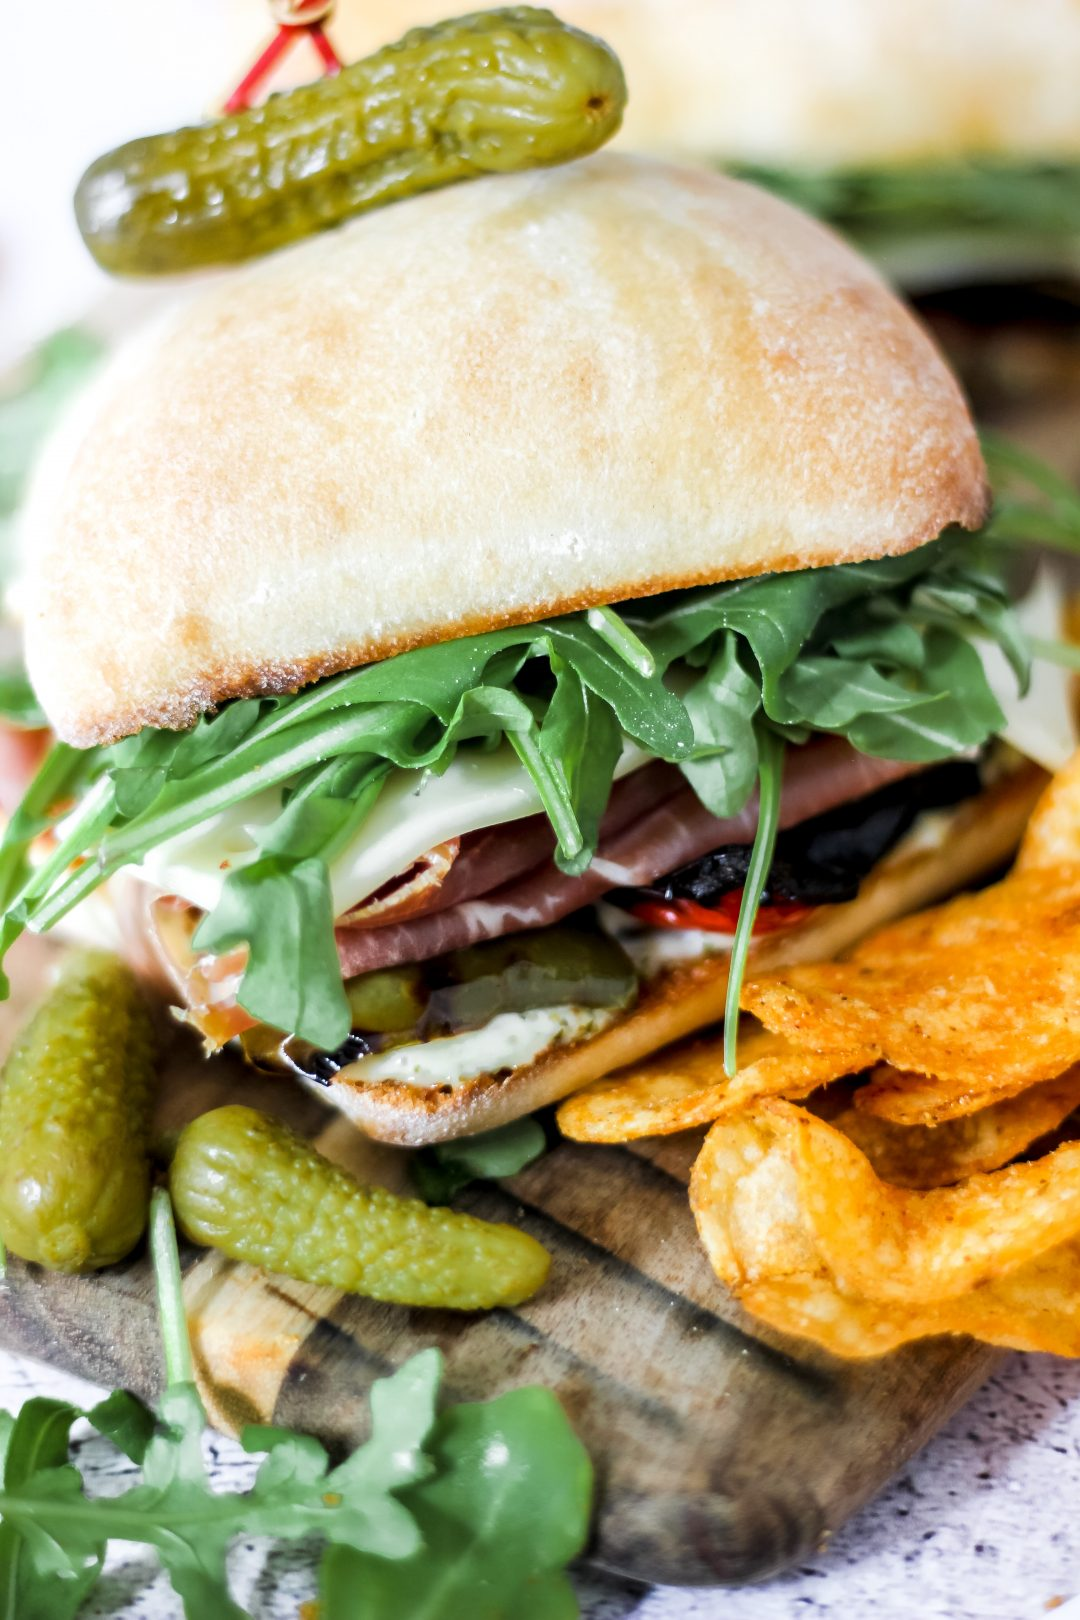 Prosciutto and Roasted Pepper Sandwich with Pesto Mayo and Kettle Chips